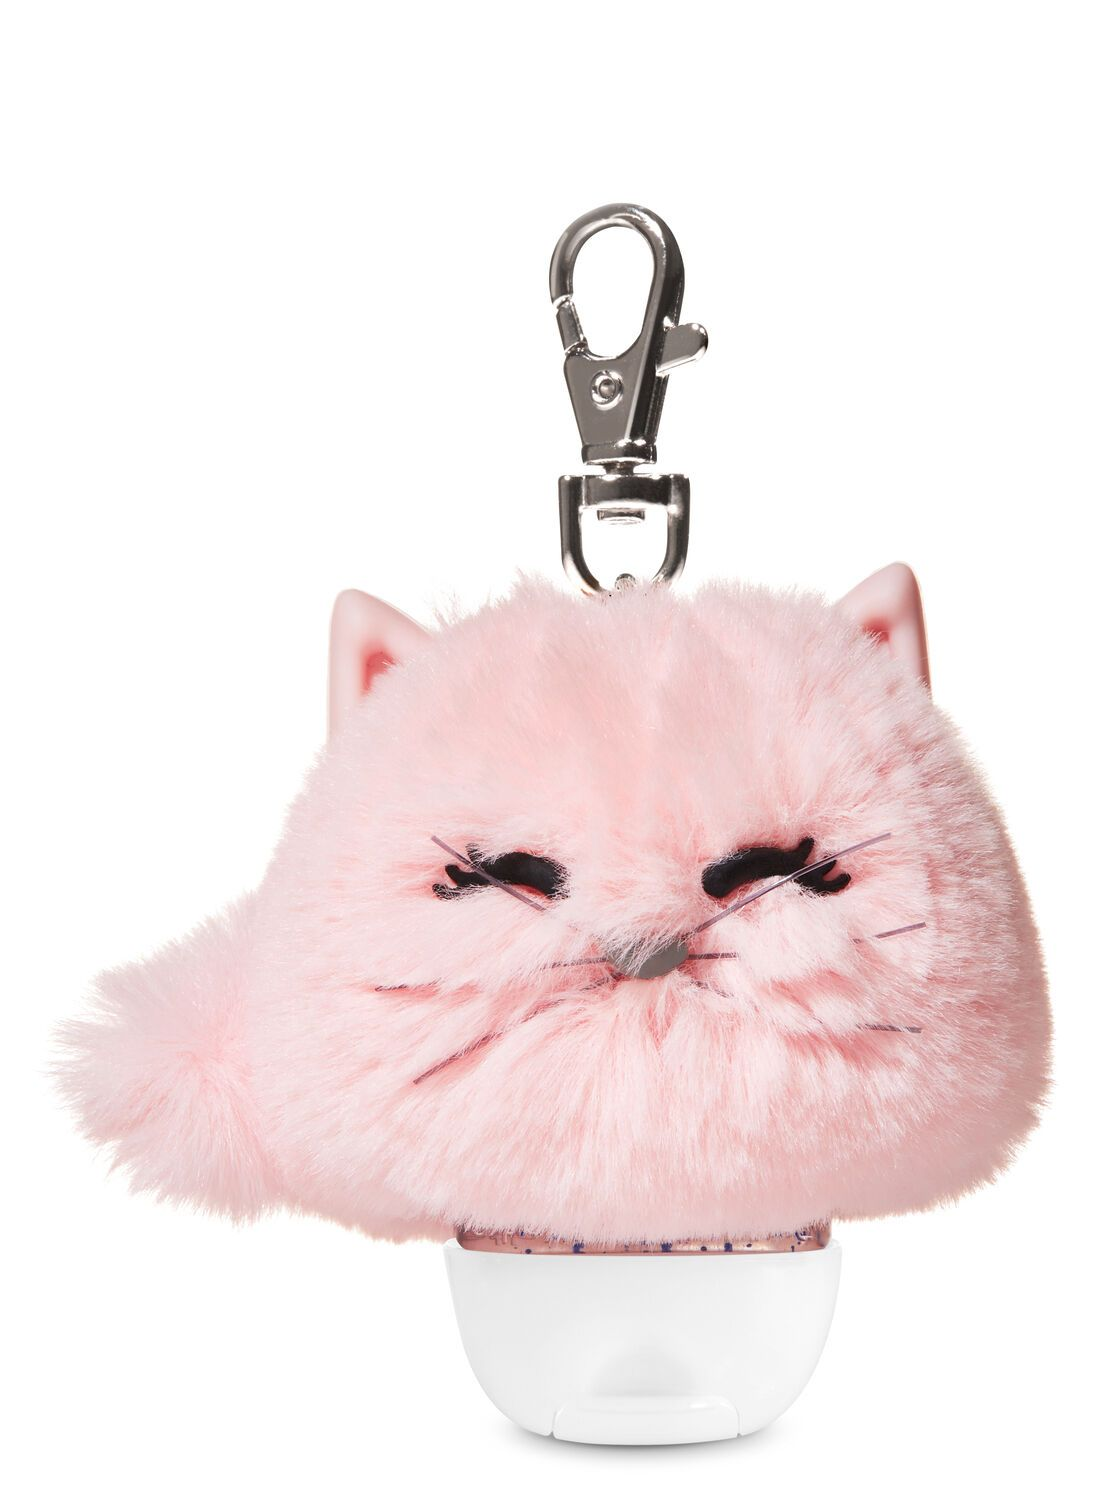 Bath Body Works Pink Cat Pom Pocketbac Holders In 2020 Pink